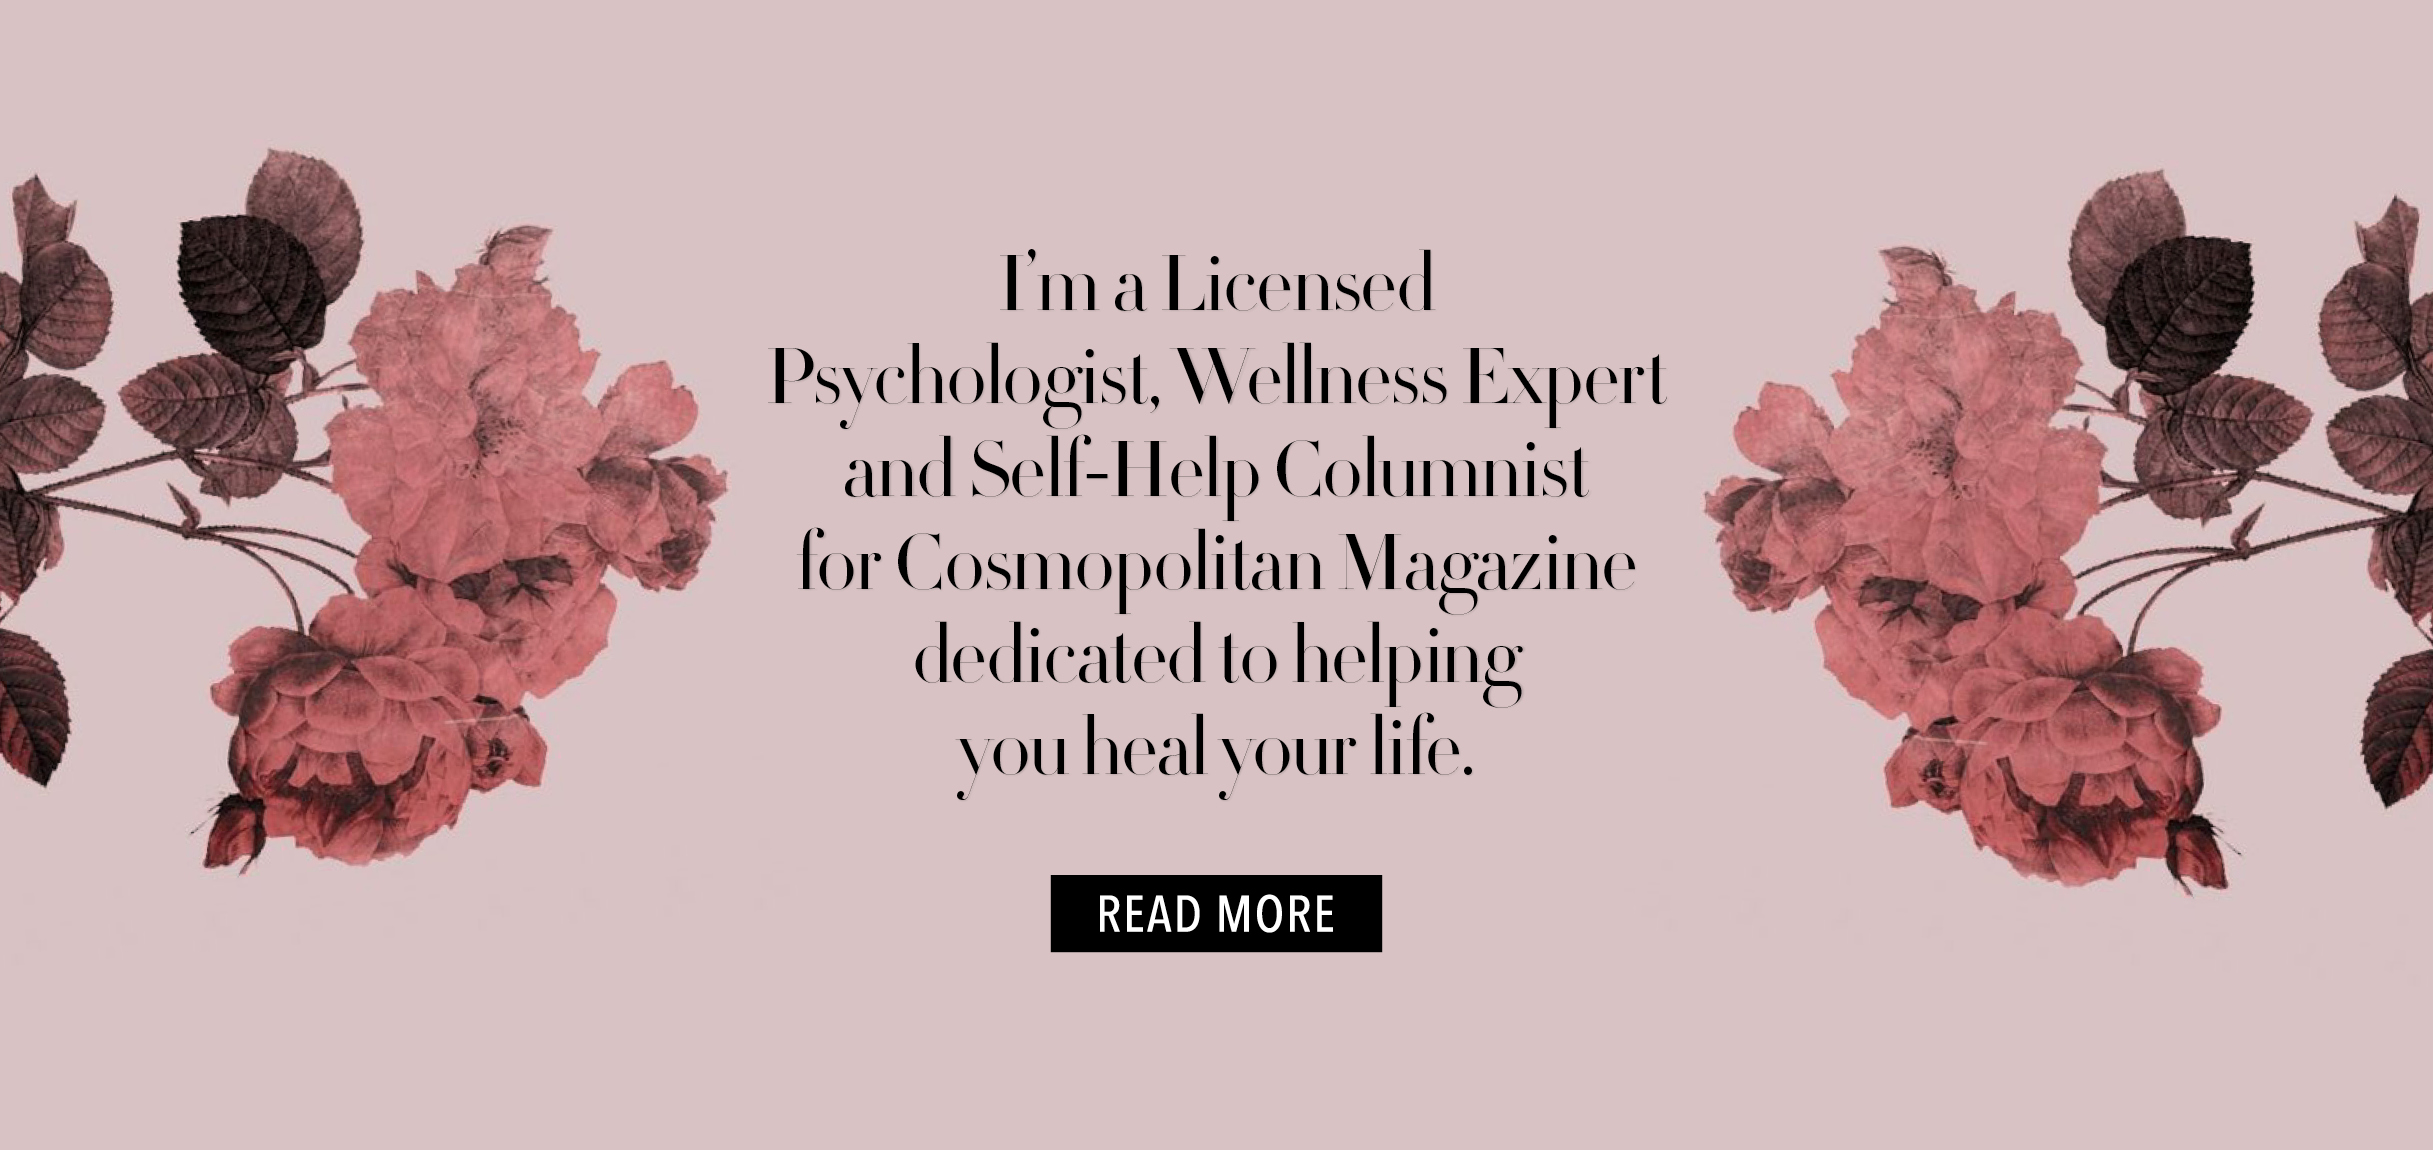 Athena Laz is a qualified psychologist, wellness expert and self-help columnist for Cosmopolitan Magazine